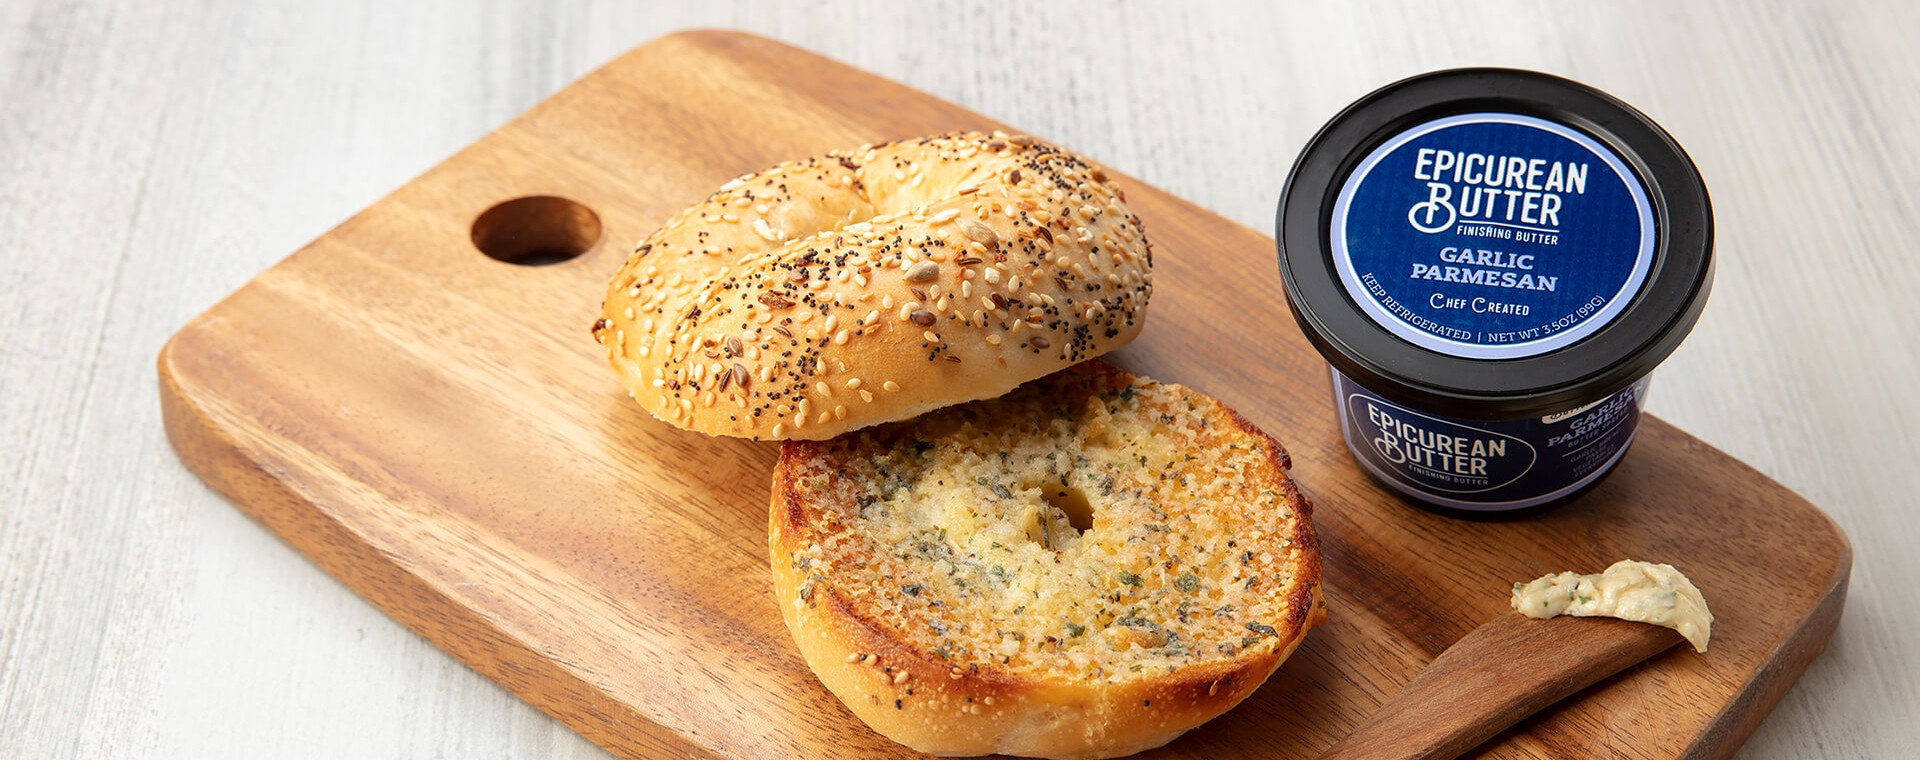 15 Ways to Butter a Bagel